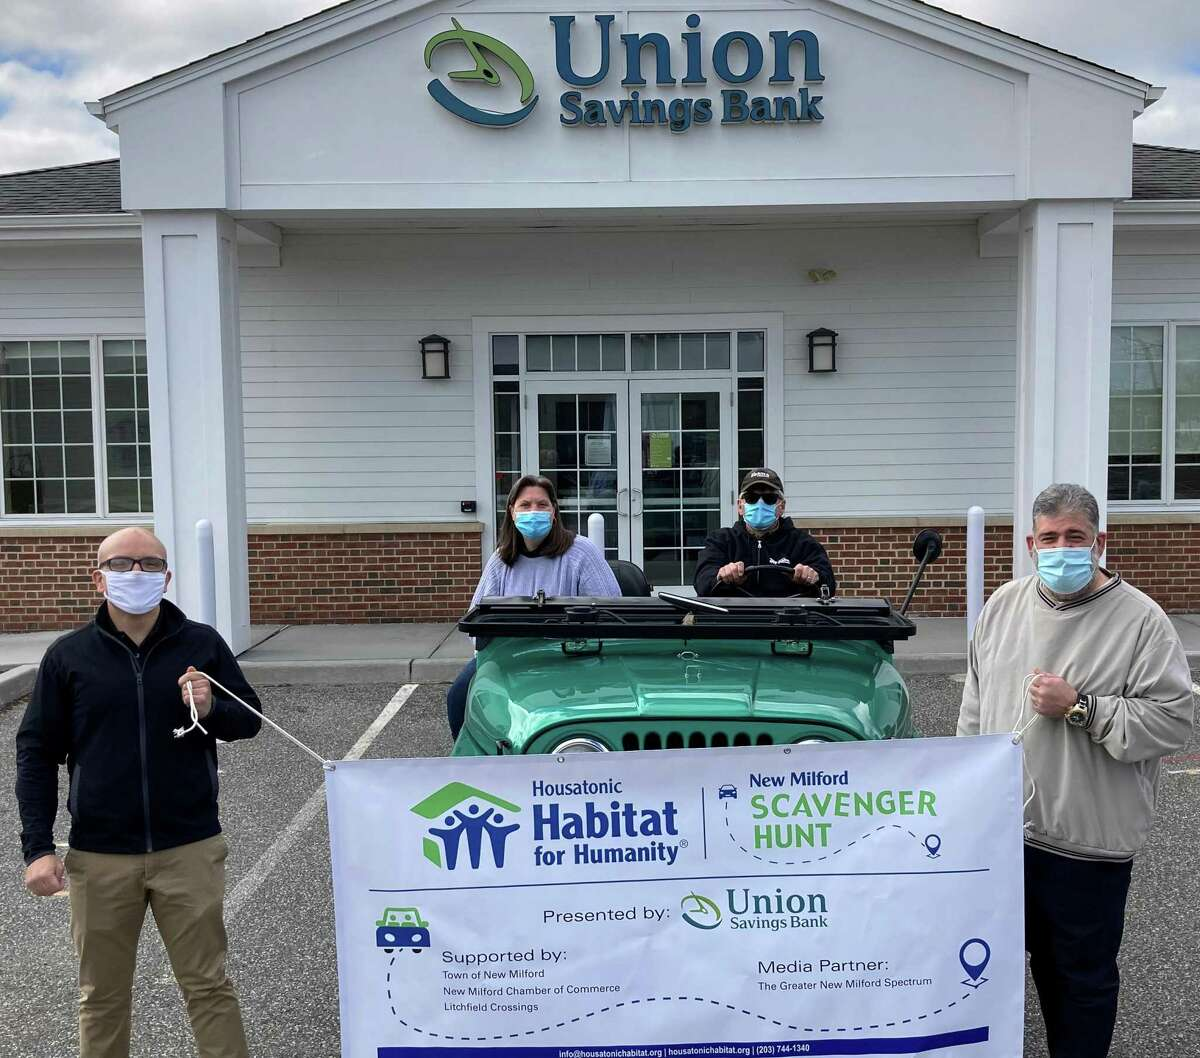 From left: Dan Silva, Union Savings Bank chief information security officer who's on the Housatonic Habitat for Humanity Board of Directors; Denise Del Mastro, New Milford Chamber of Commerce executive director; Troy Hart of New Milford, a 20-year Housatonic Habitat construction volunteer; and Mayor Peter Bass.